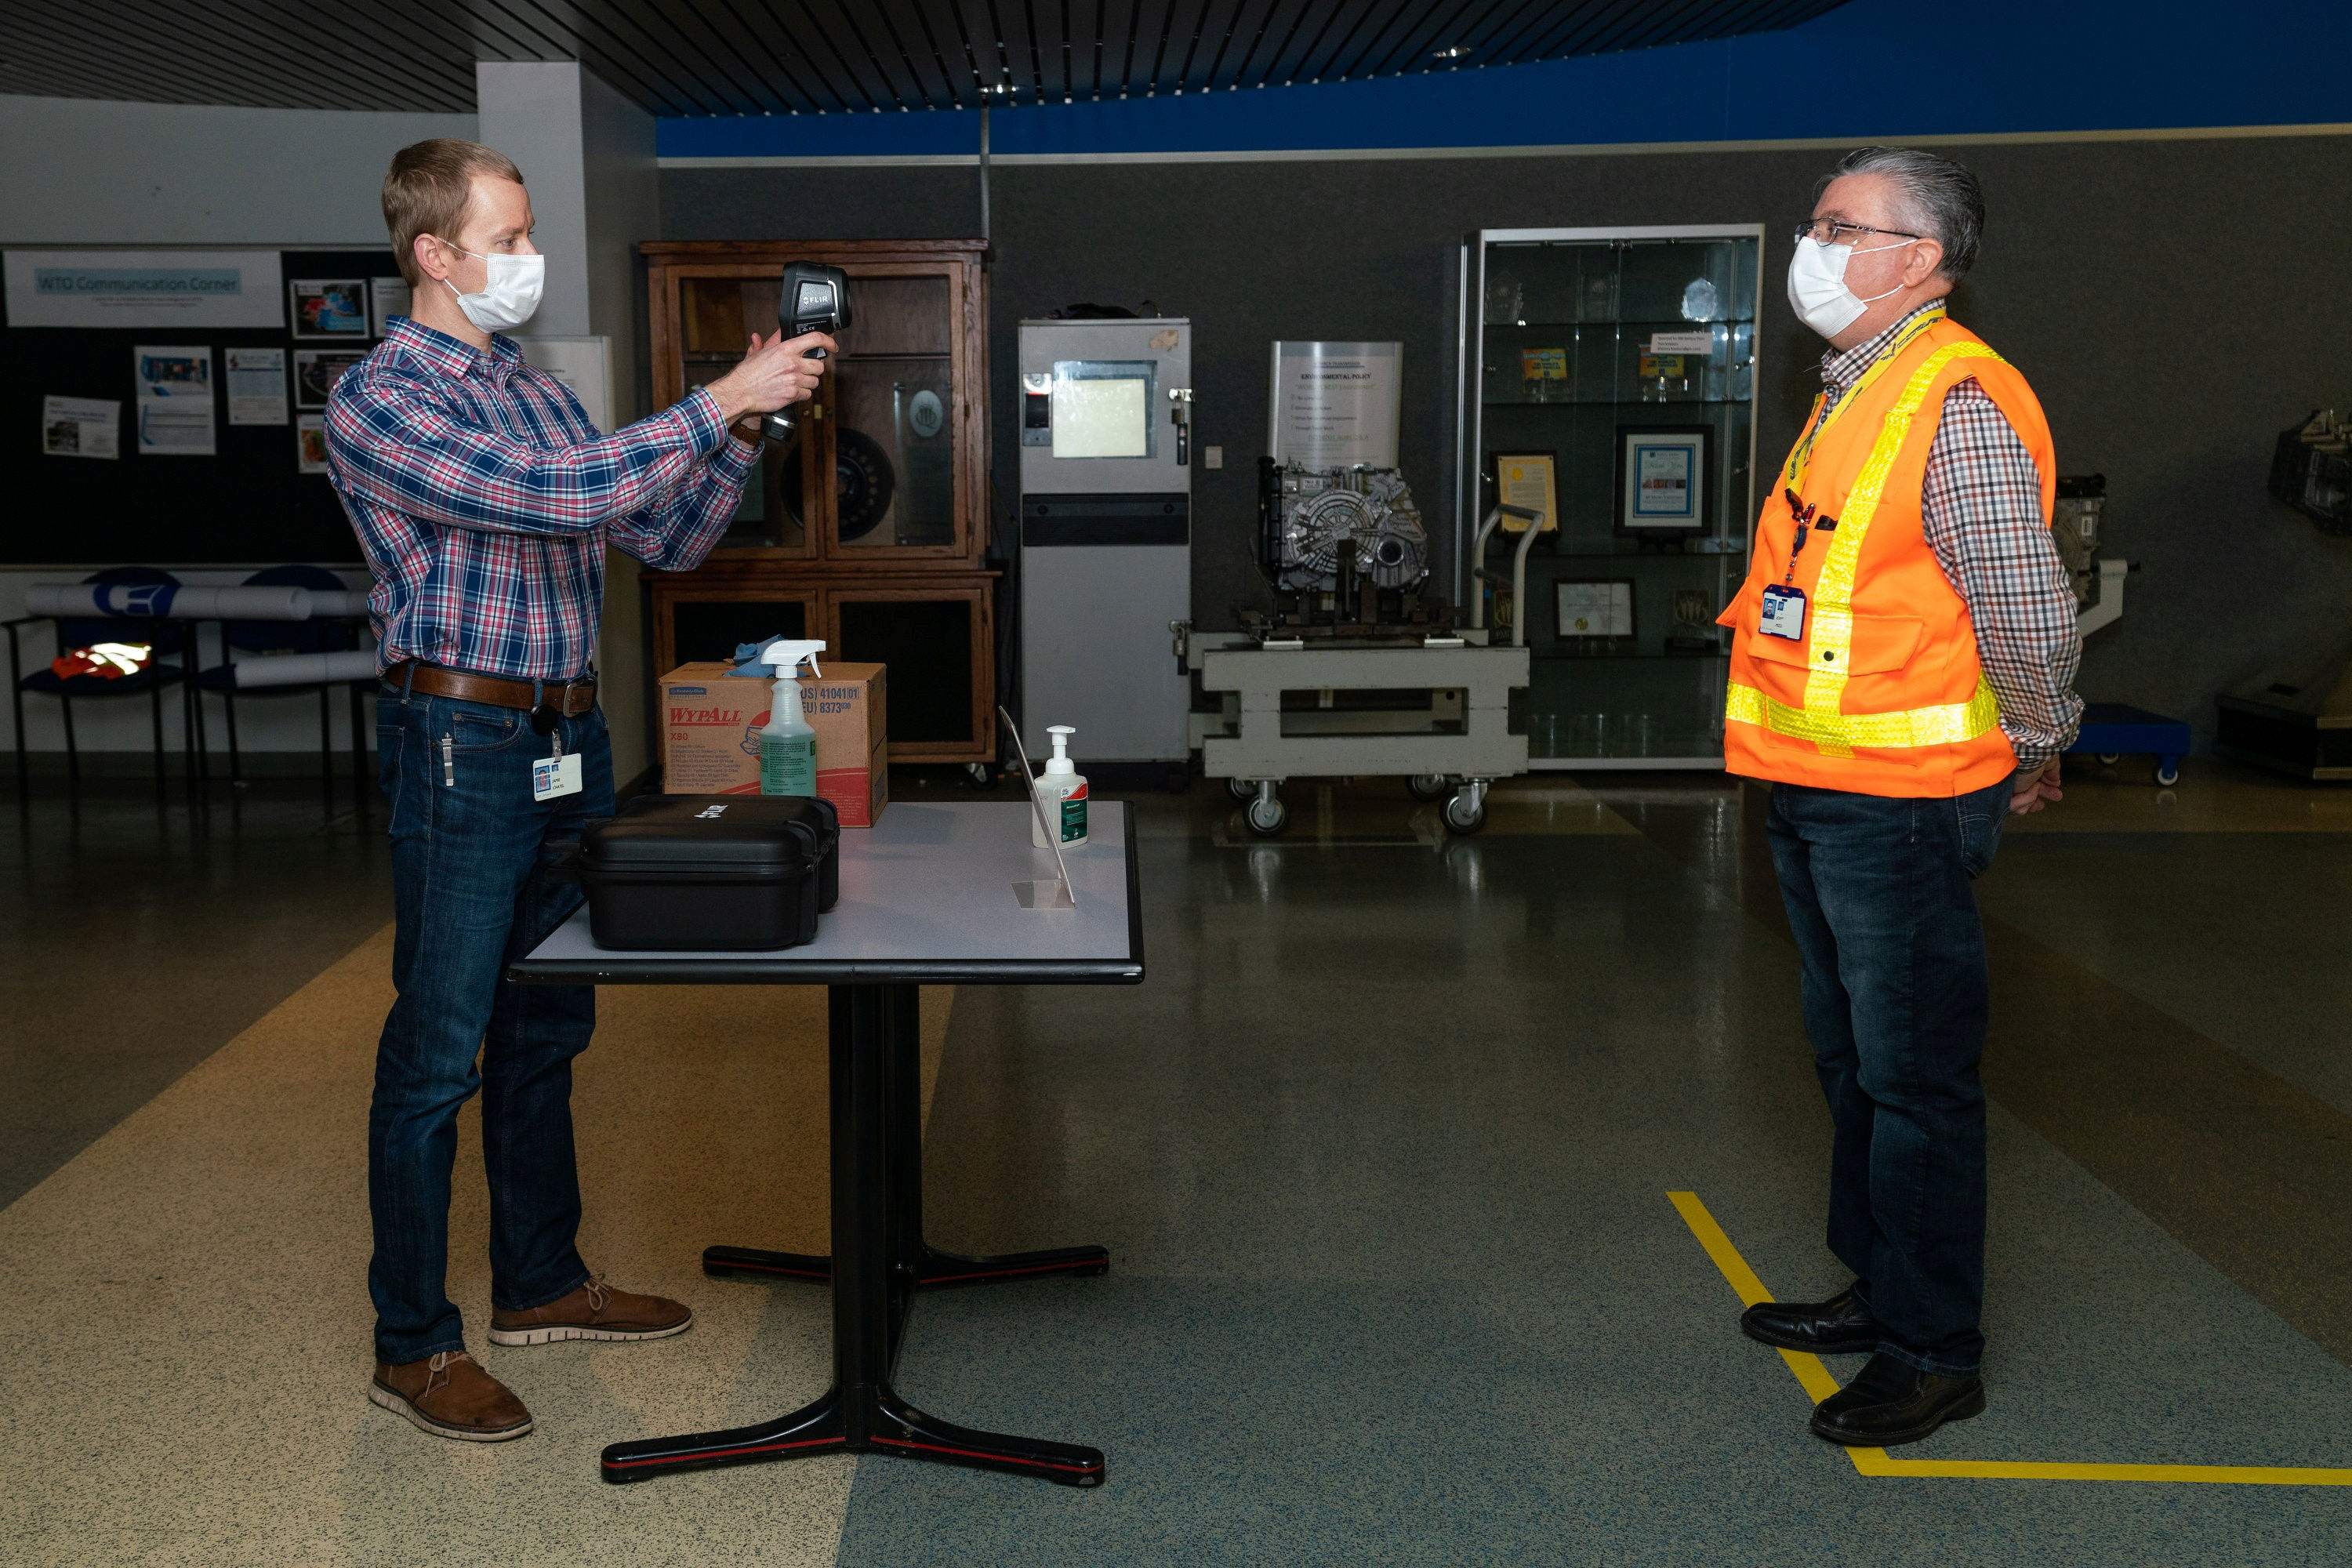 As General Motors prepares to resume production at its plants in the US, an employee tests a fever-scanning thermal camera at a facility in Warren, Michigan, as part of a new procedure for employees entering the factories. (VIA REUTERS)